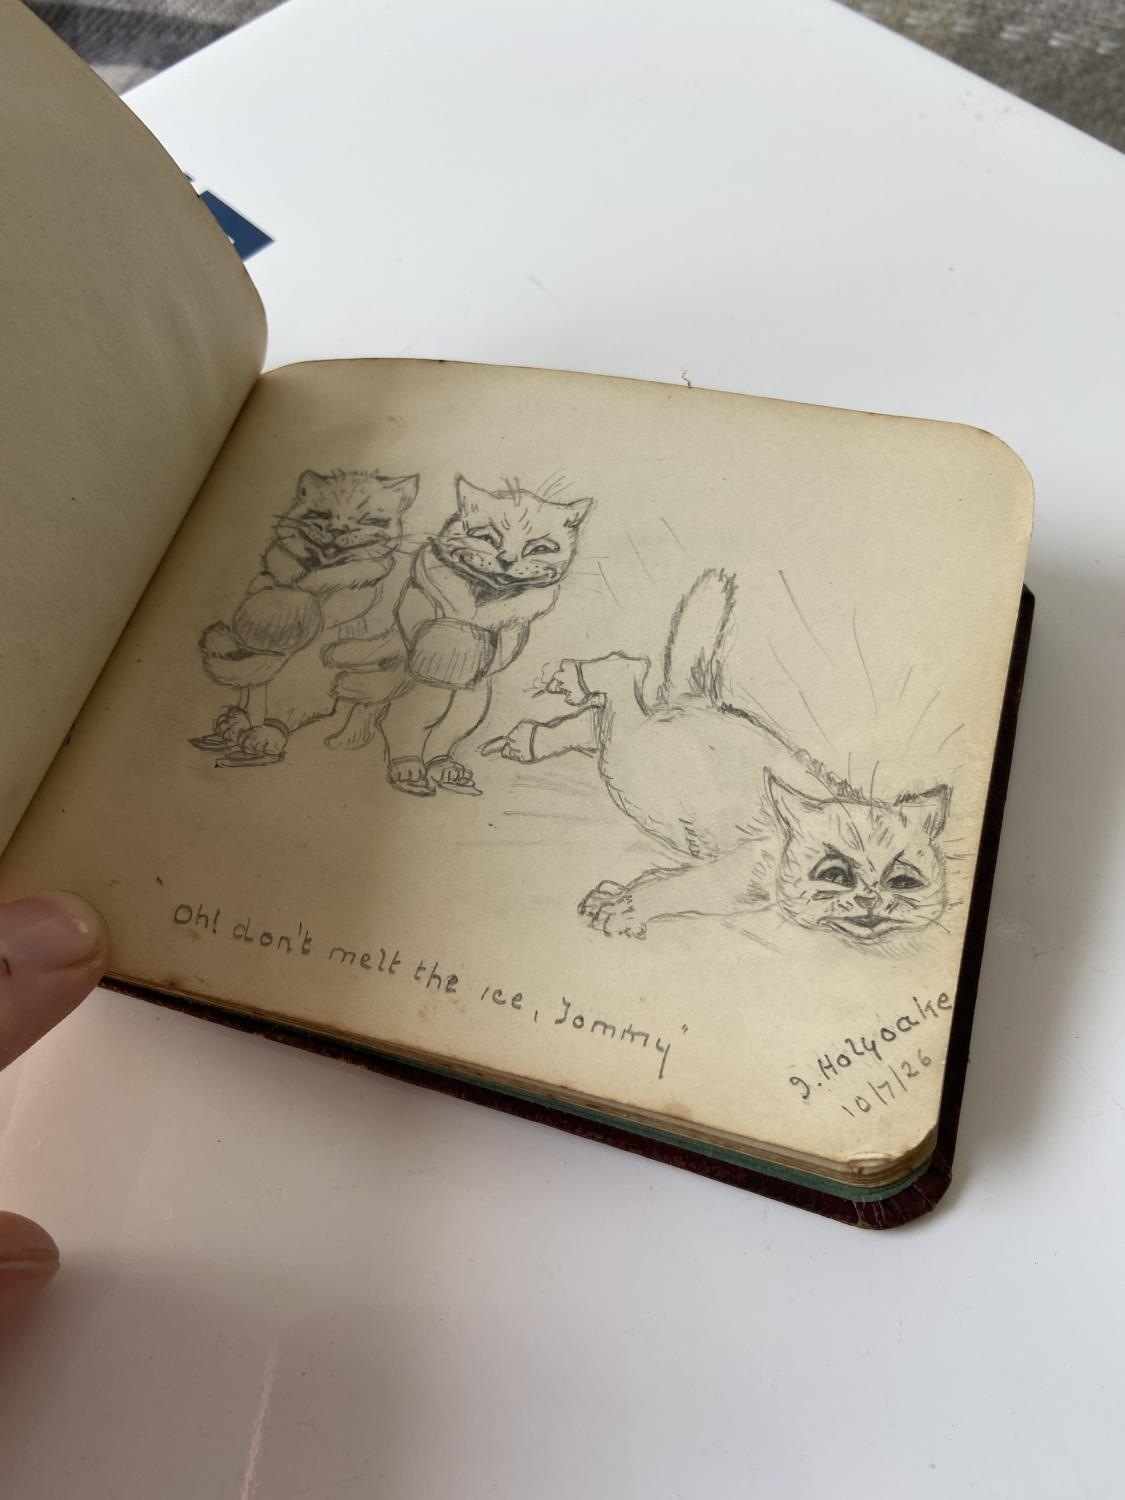 An old autograph album containing various poems, sayings & doodles - Image 15 of 18